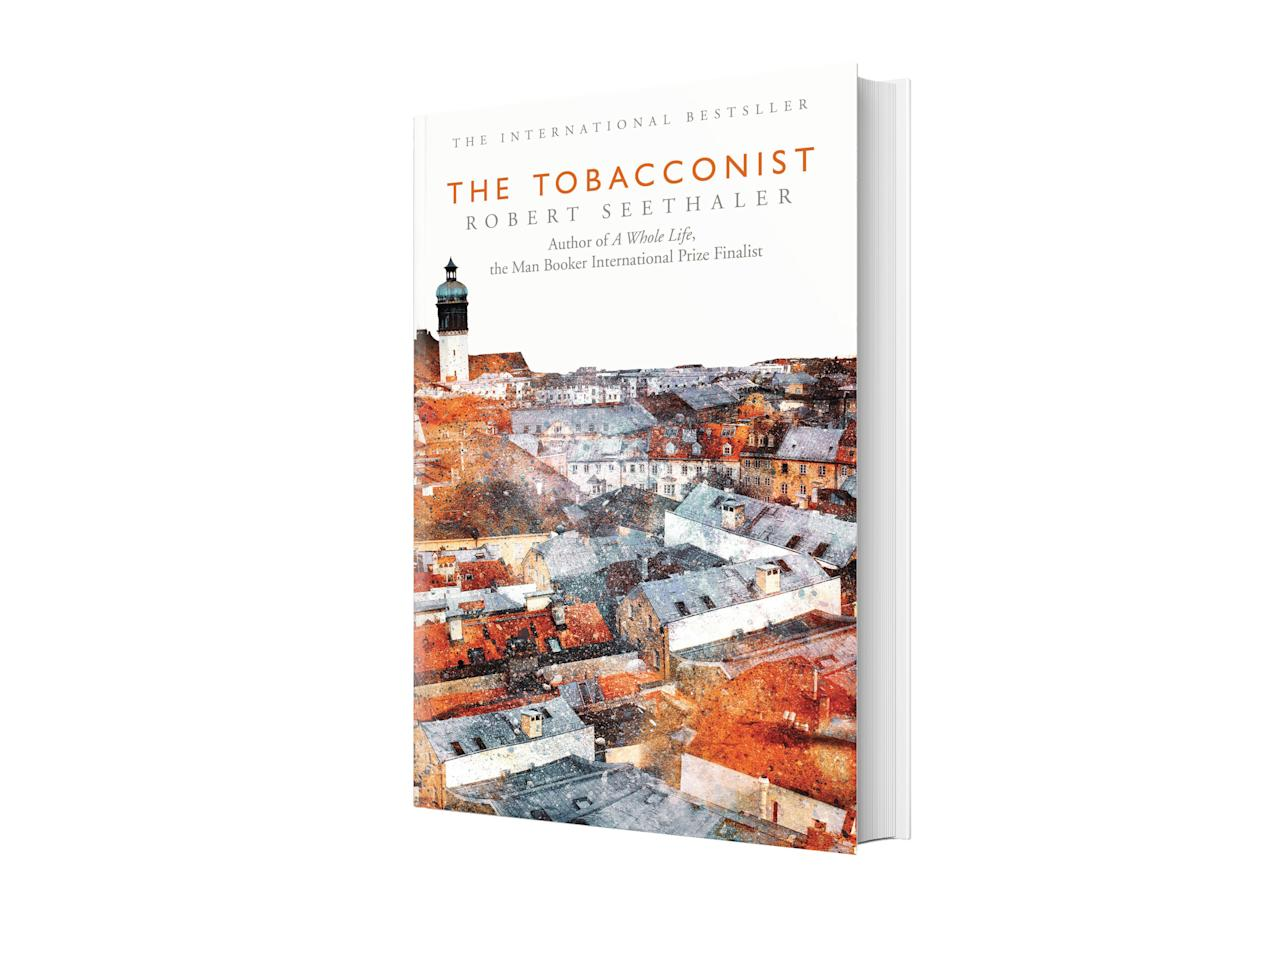 """<p>""""<em>The Tobacconist</em> (translated into English by Charlotte Collins) is set in 1937 just before the German occupation. It follows 17-year-old Franz, who moves to <a href=""""https://www.cntraveler.com/gallery/what-to-pack-for-a-trip-to-vienna?mbid=synd_yahoo_rss"""">Vienna</a> to become the apprentice in a tobacco shop. Its quiet wisdom and sincerity resonated with me very deeply."""" —Former ambassador Wolfgang A. Waldner</p> <p><strong>Buy now:</strong> <em>The Tobacconist</em> by Robert Seethaler, <a href=""""https://amzn.to/34degLu"""" rel=""""nofollow"""" target=""""_blank"""">amazon.com</a></p>"""